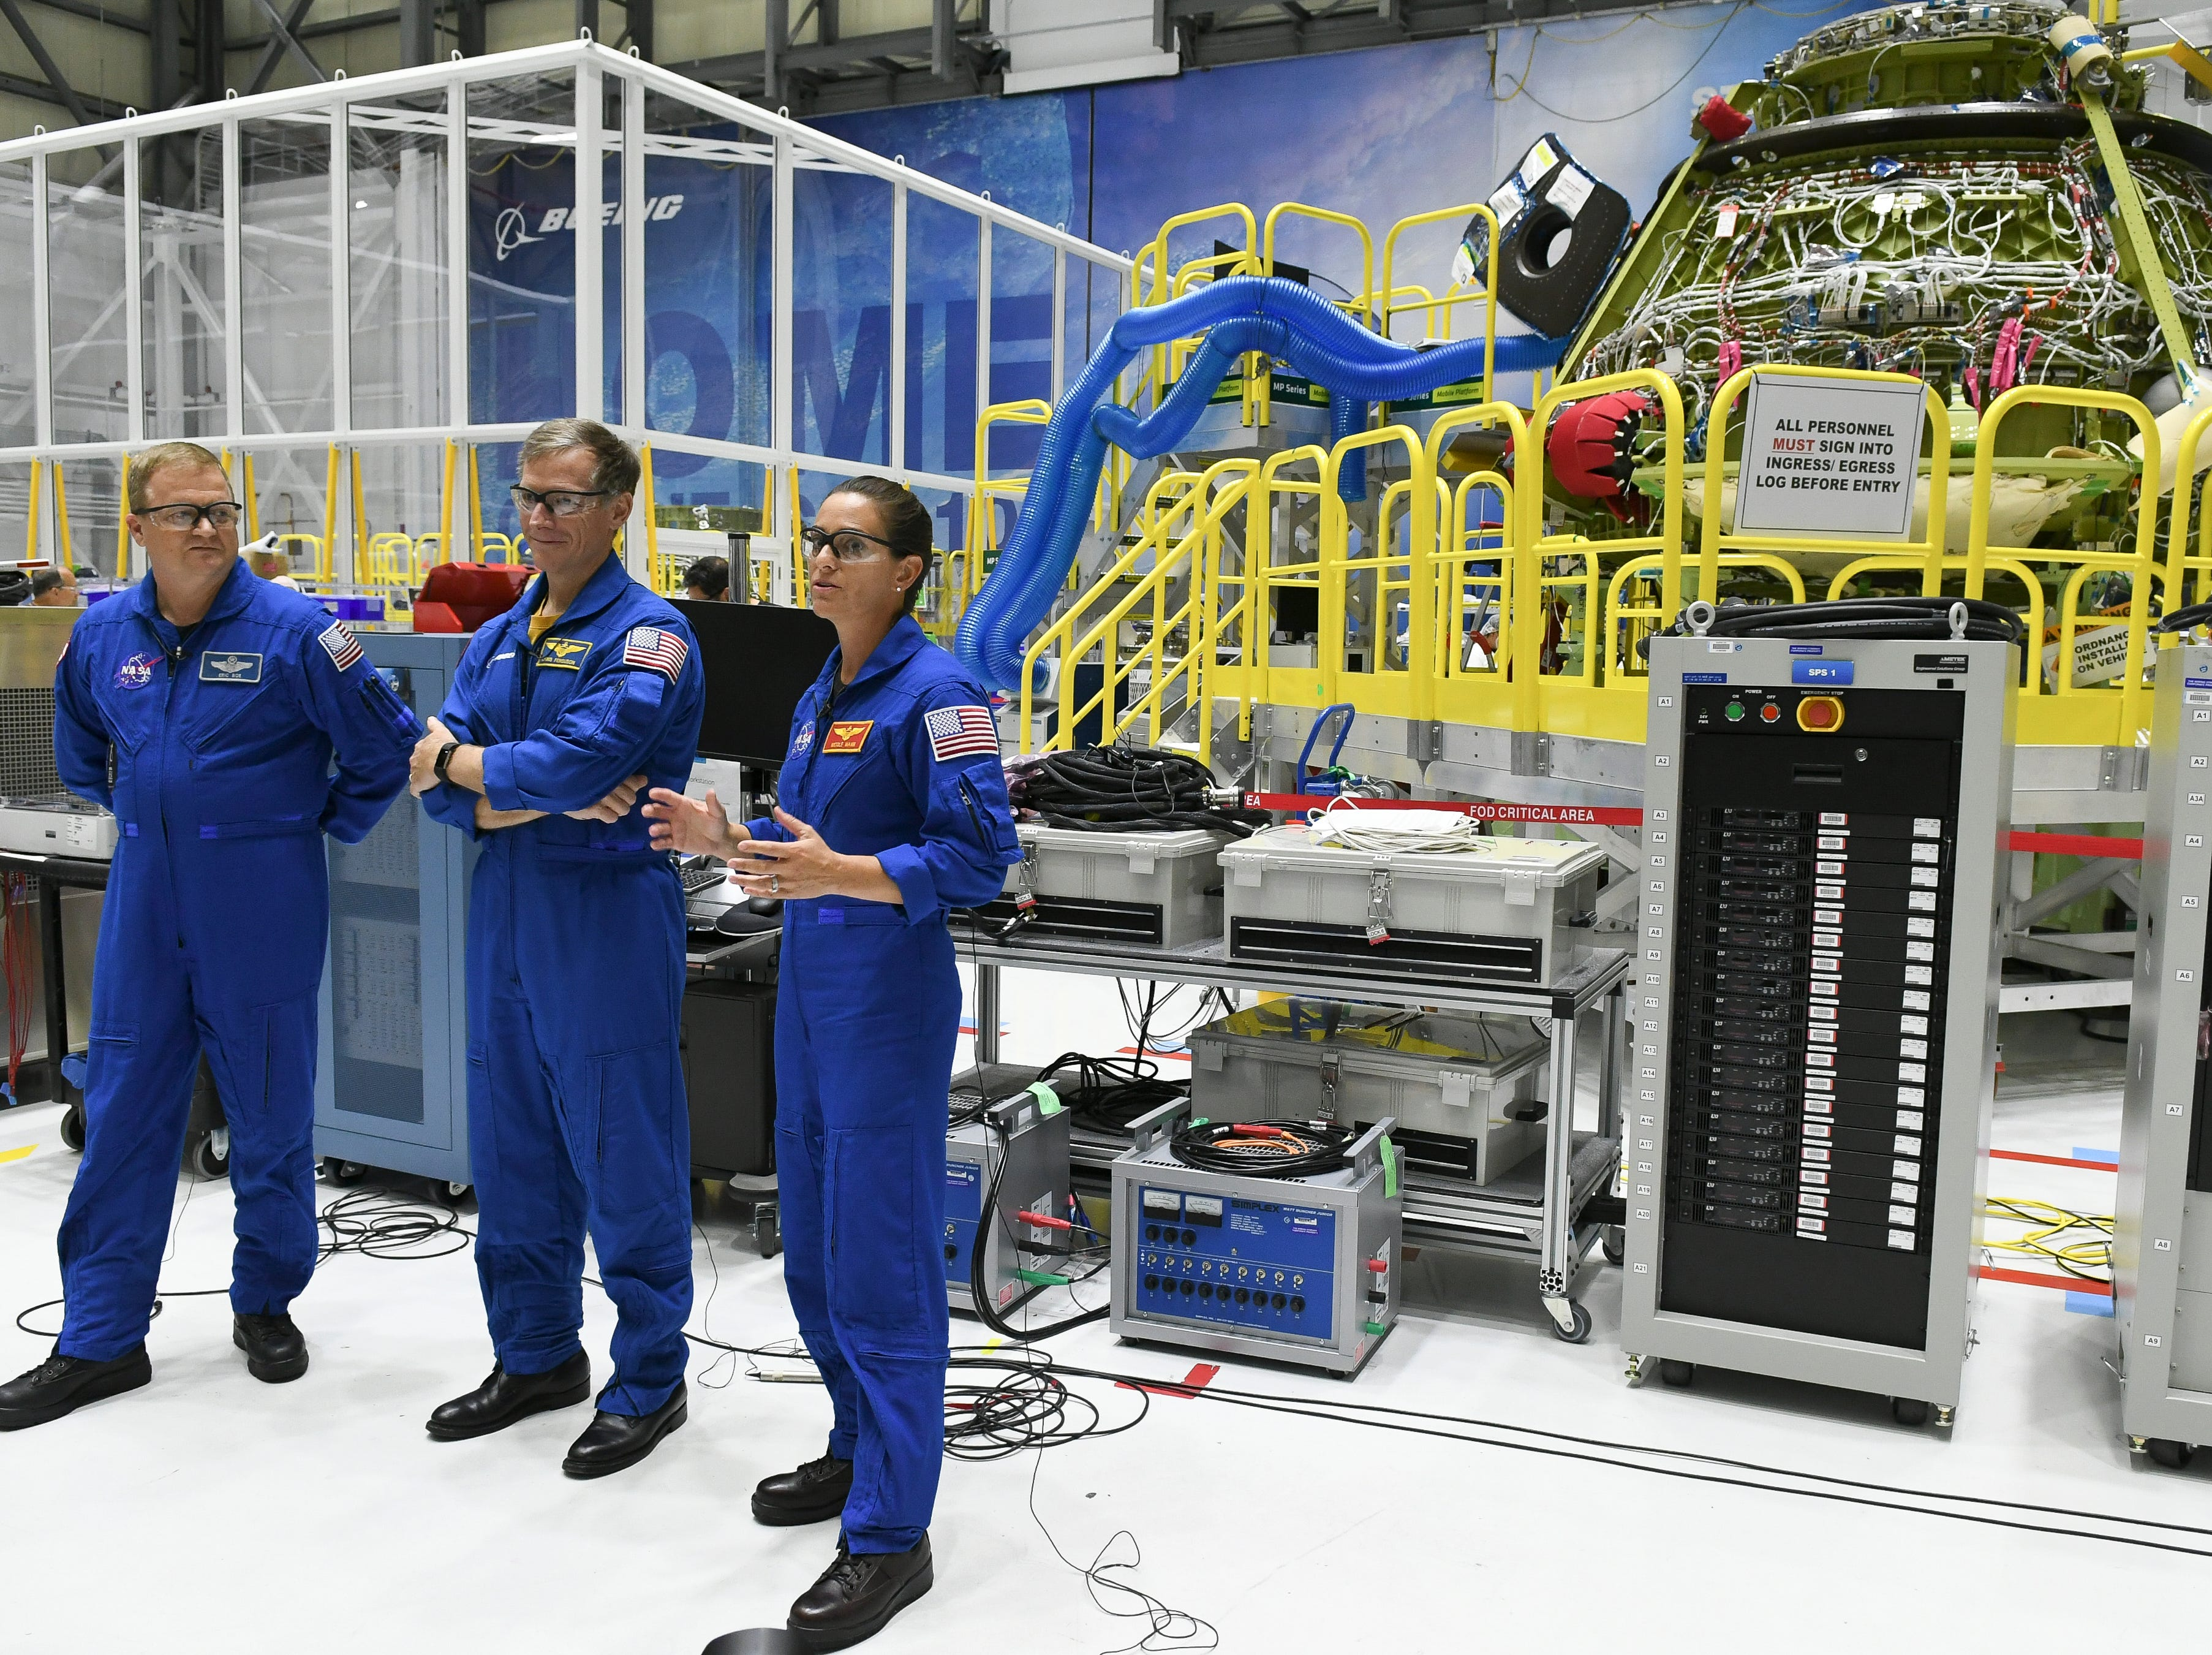 Astronauts Eric Boe, Chris Ferguson and Nicole Mann stand in front of the Starliner crew test vehicle in the Boeing  manufacturing facility at Kennedy Space Center.